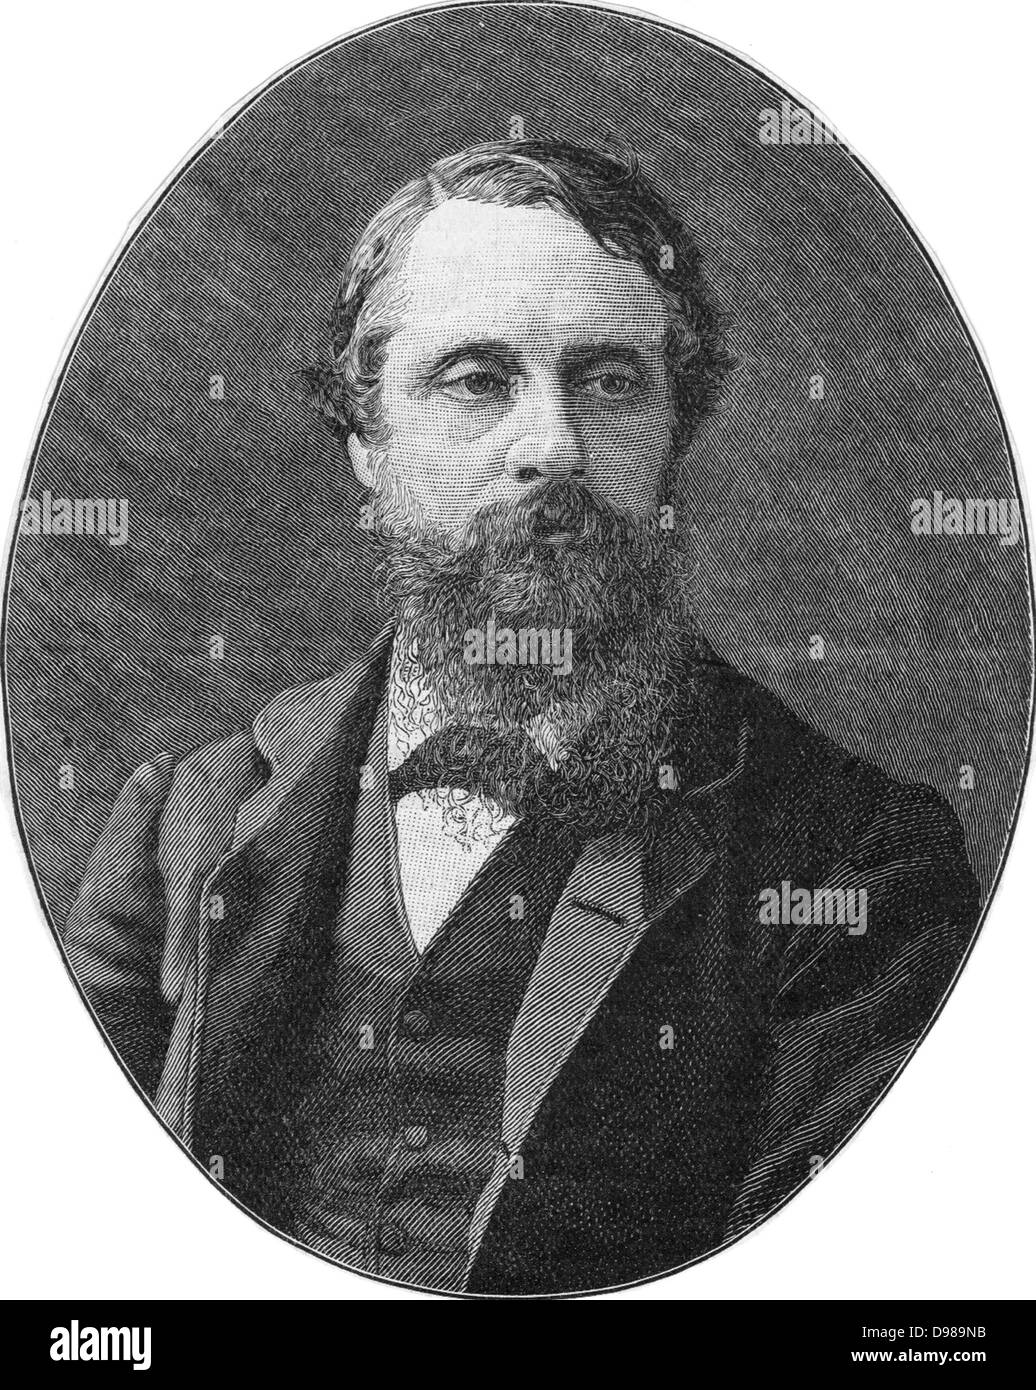 Lord Frederick Charles Cavendish (1836-1882) English Liberal politician. Appointed Chief Sacretary for Ireland in - Stock Image